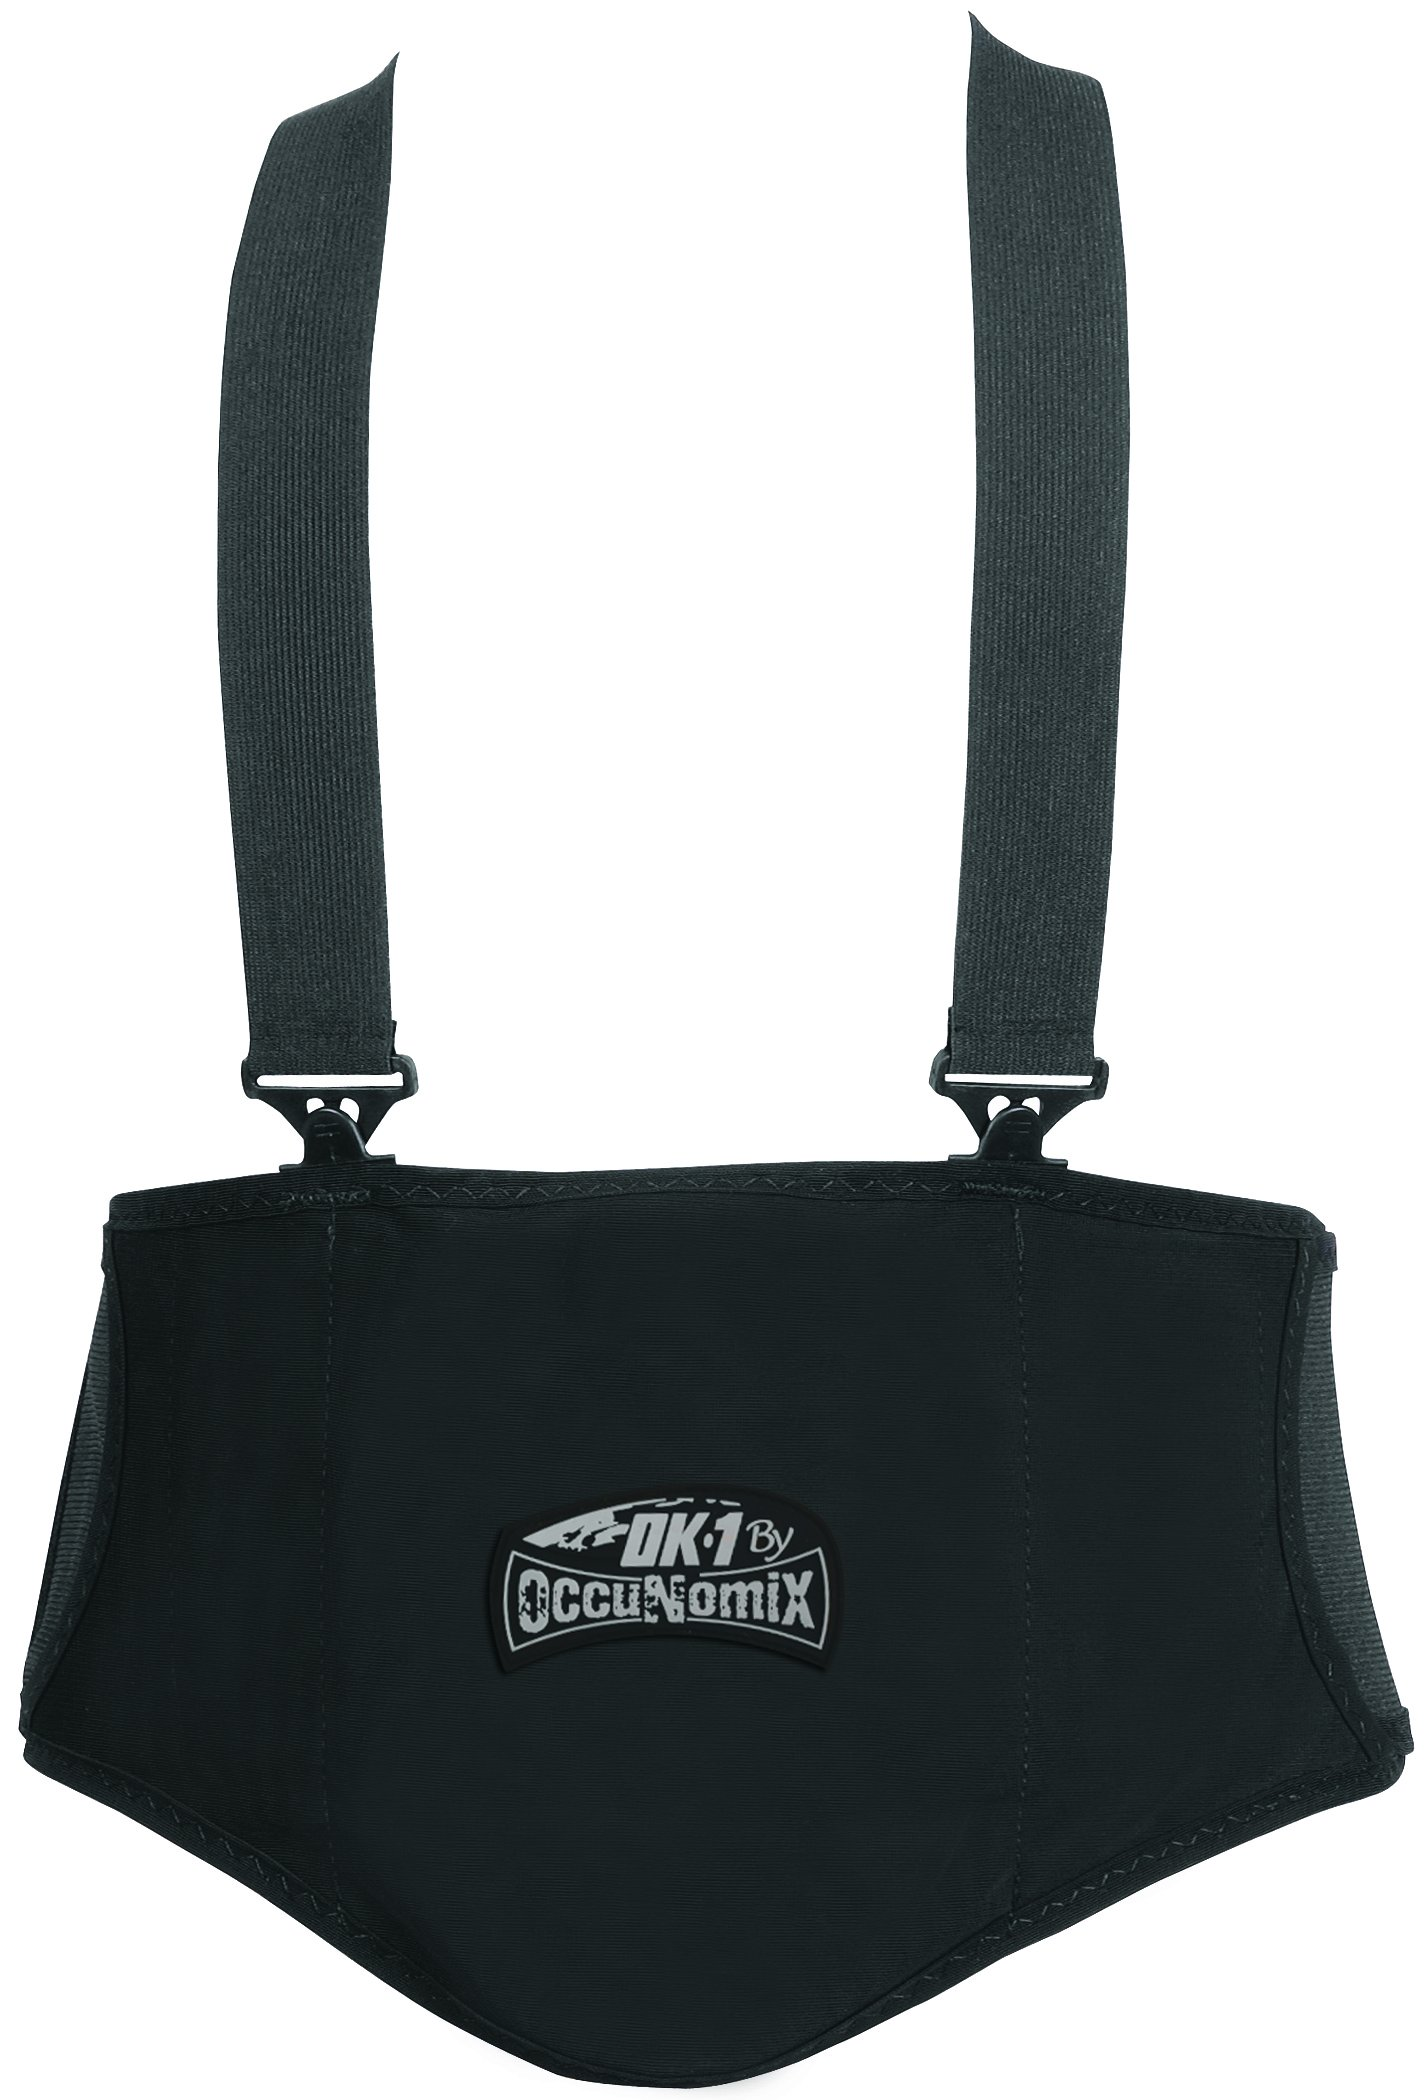 OK-1 92400 Black Lumbar Back Belt, Large by Unknown (Image #1)